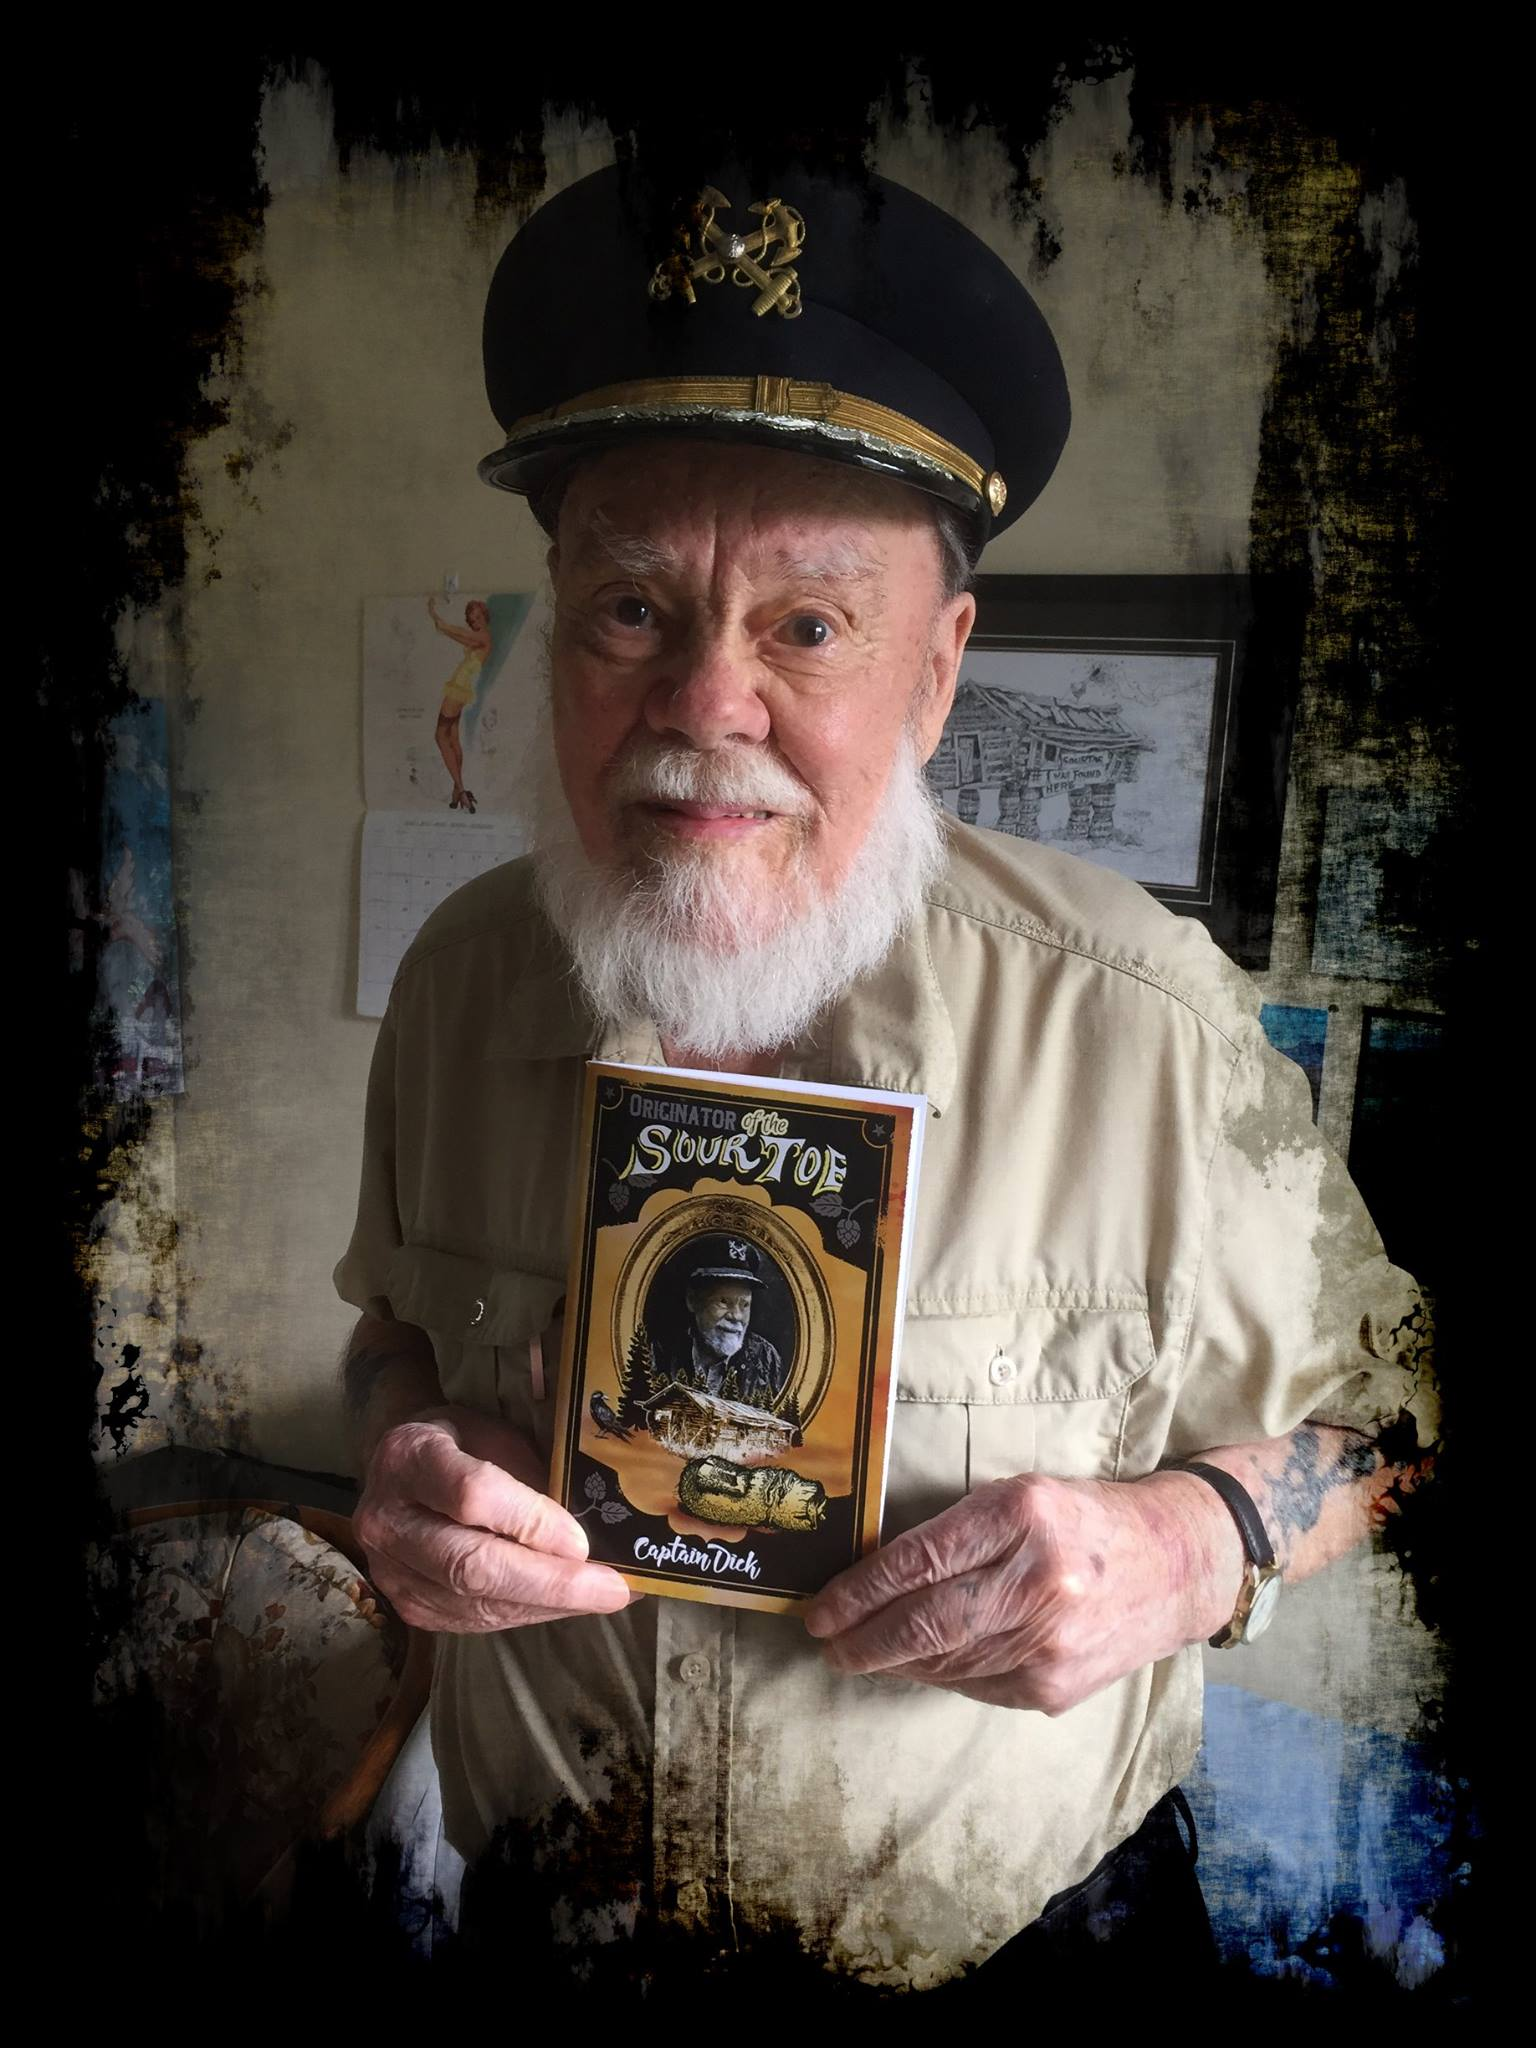 Captain Dick Stevenson proudly displays his self-published autobiography in this 2016 photo. Photo: Facebook